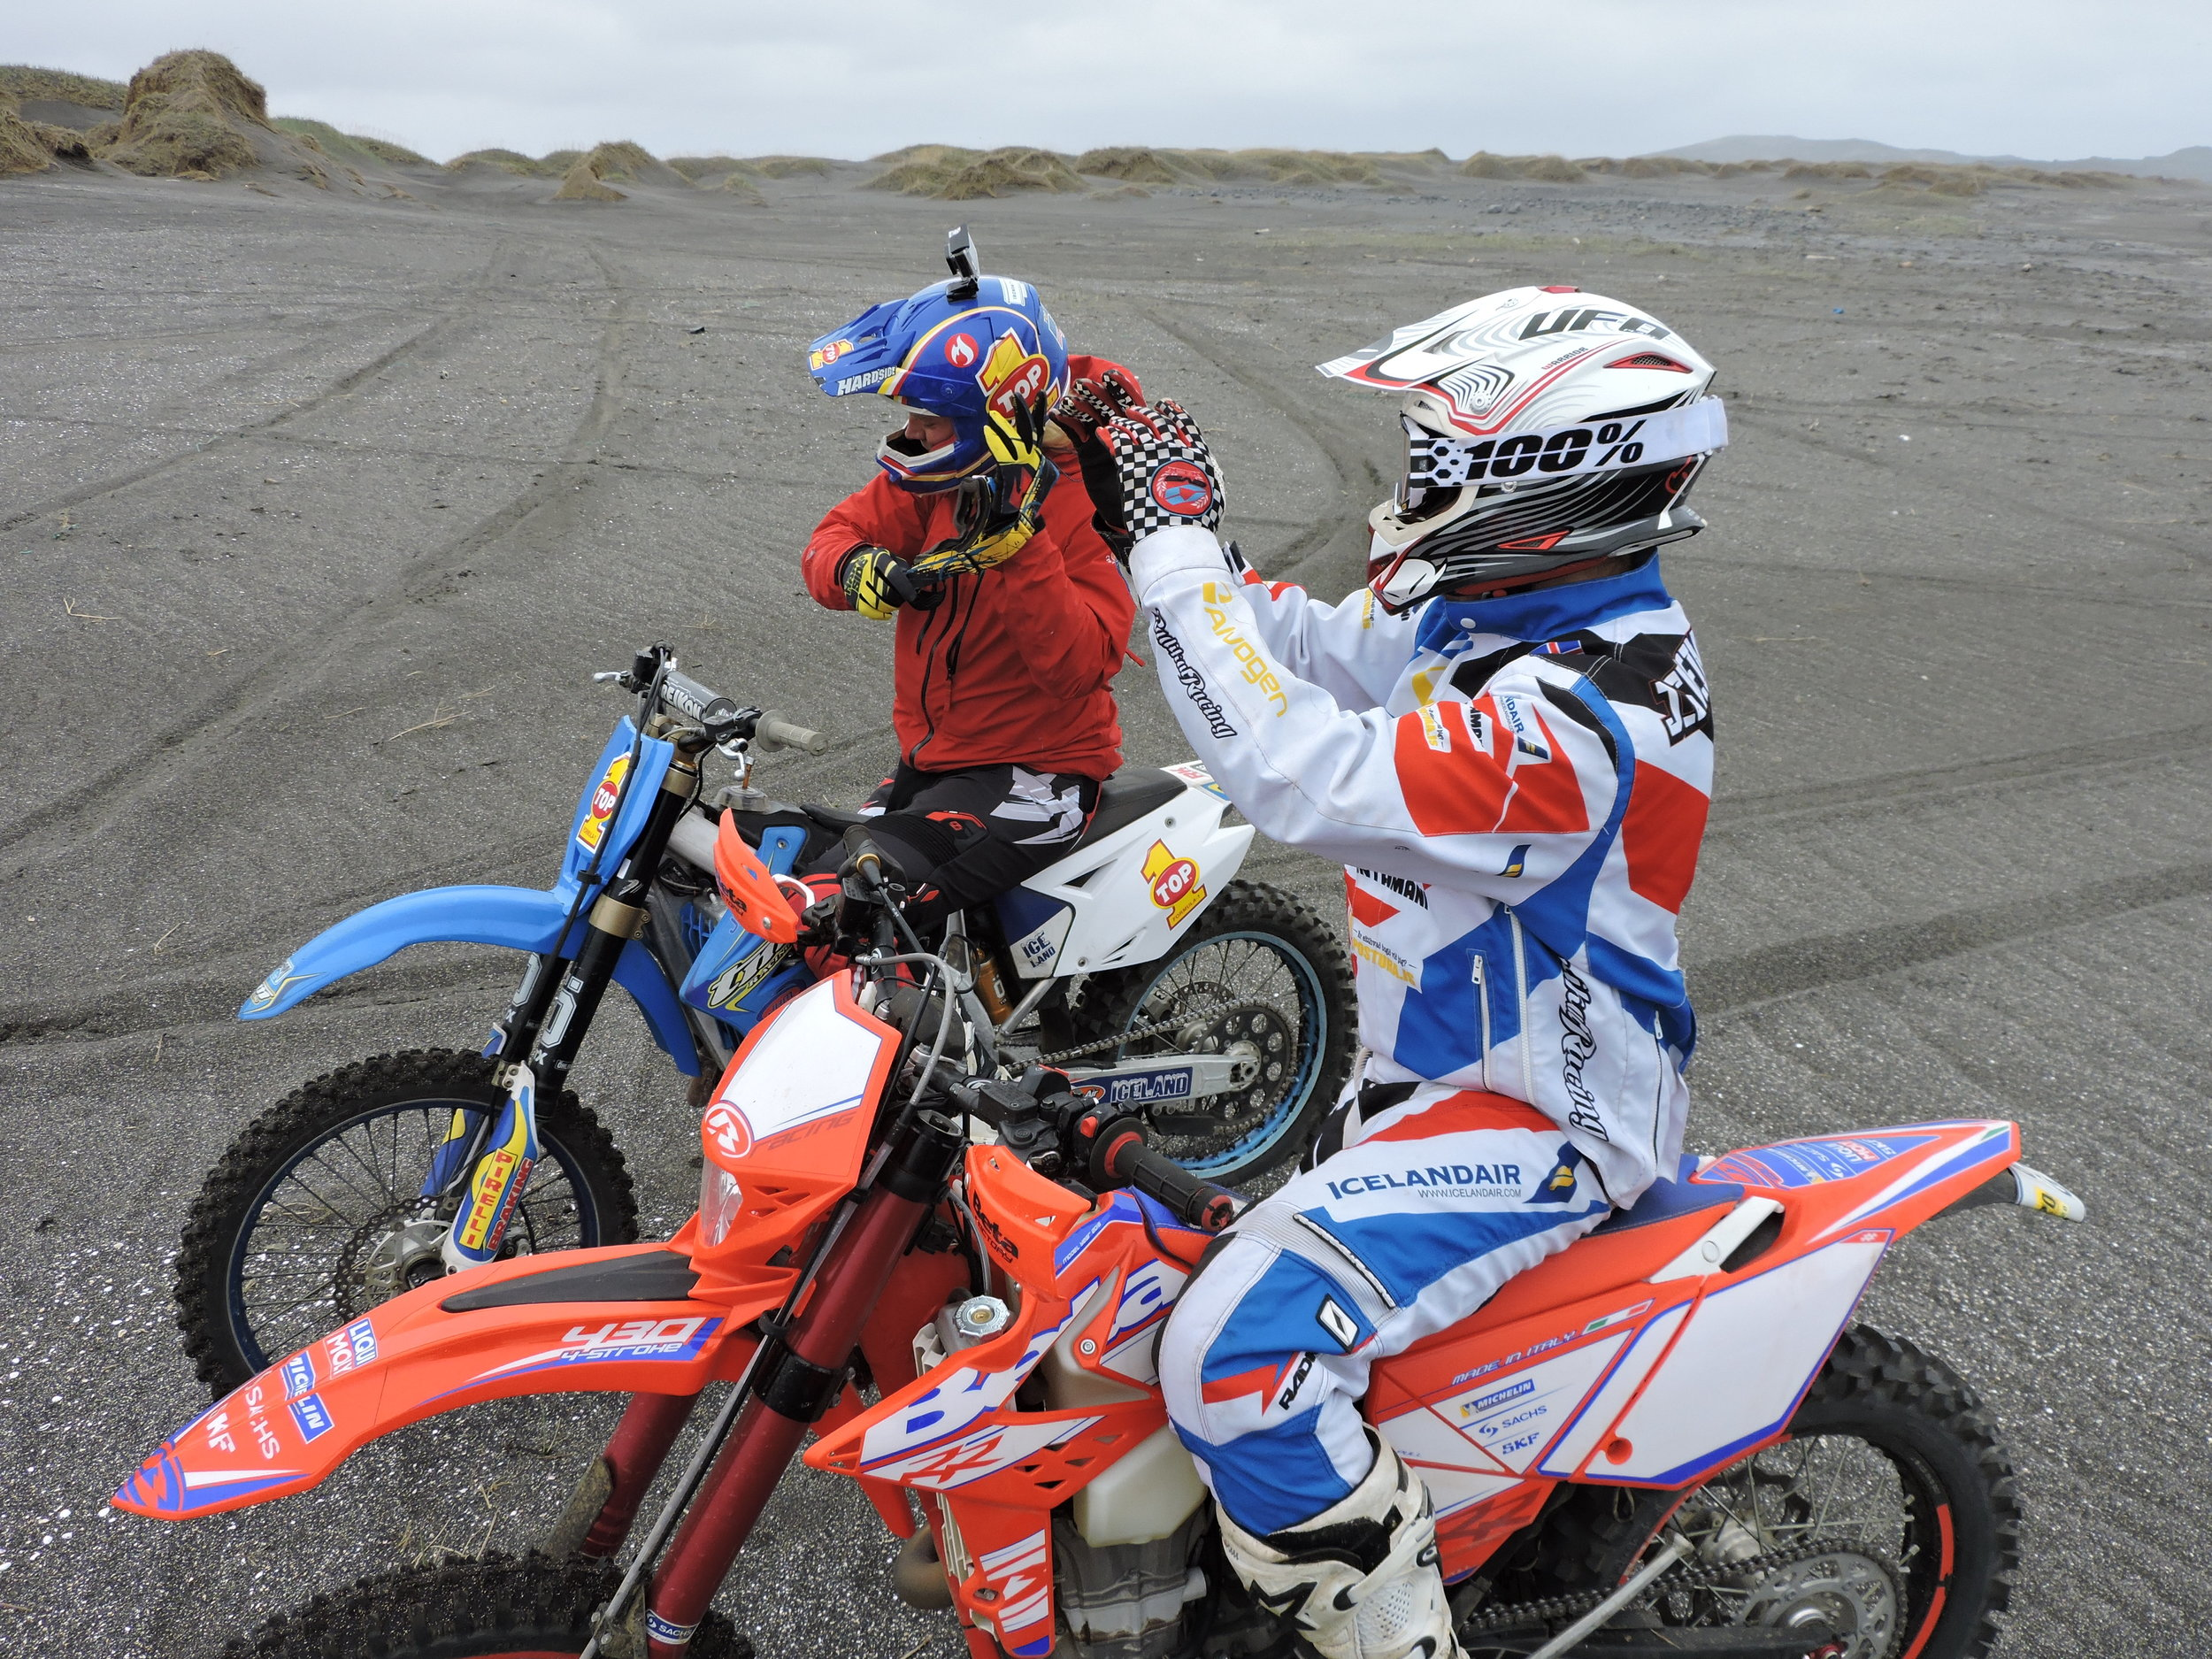 One on One Enduro trail rides to give you firsthand guidance in real riding situations